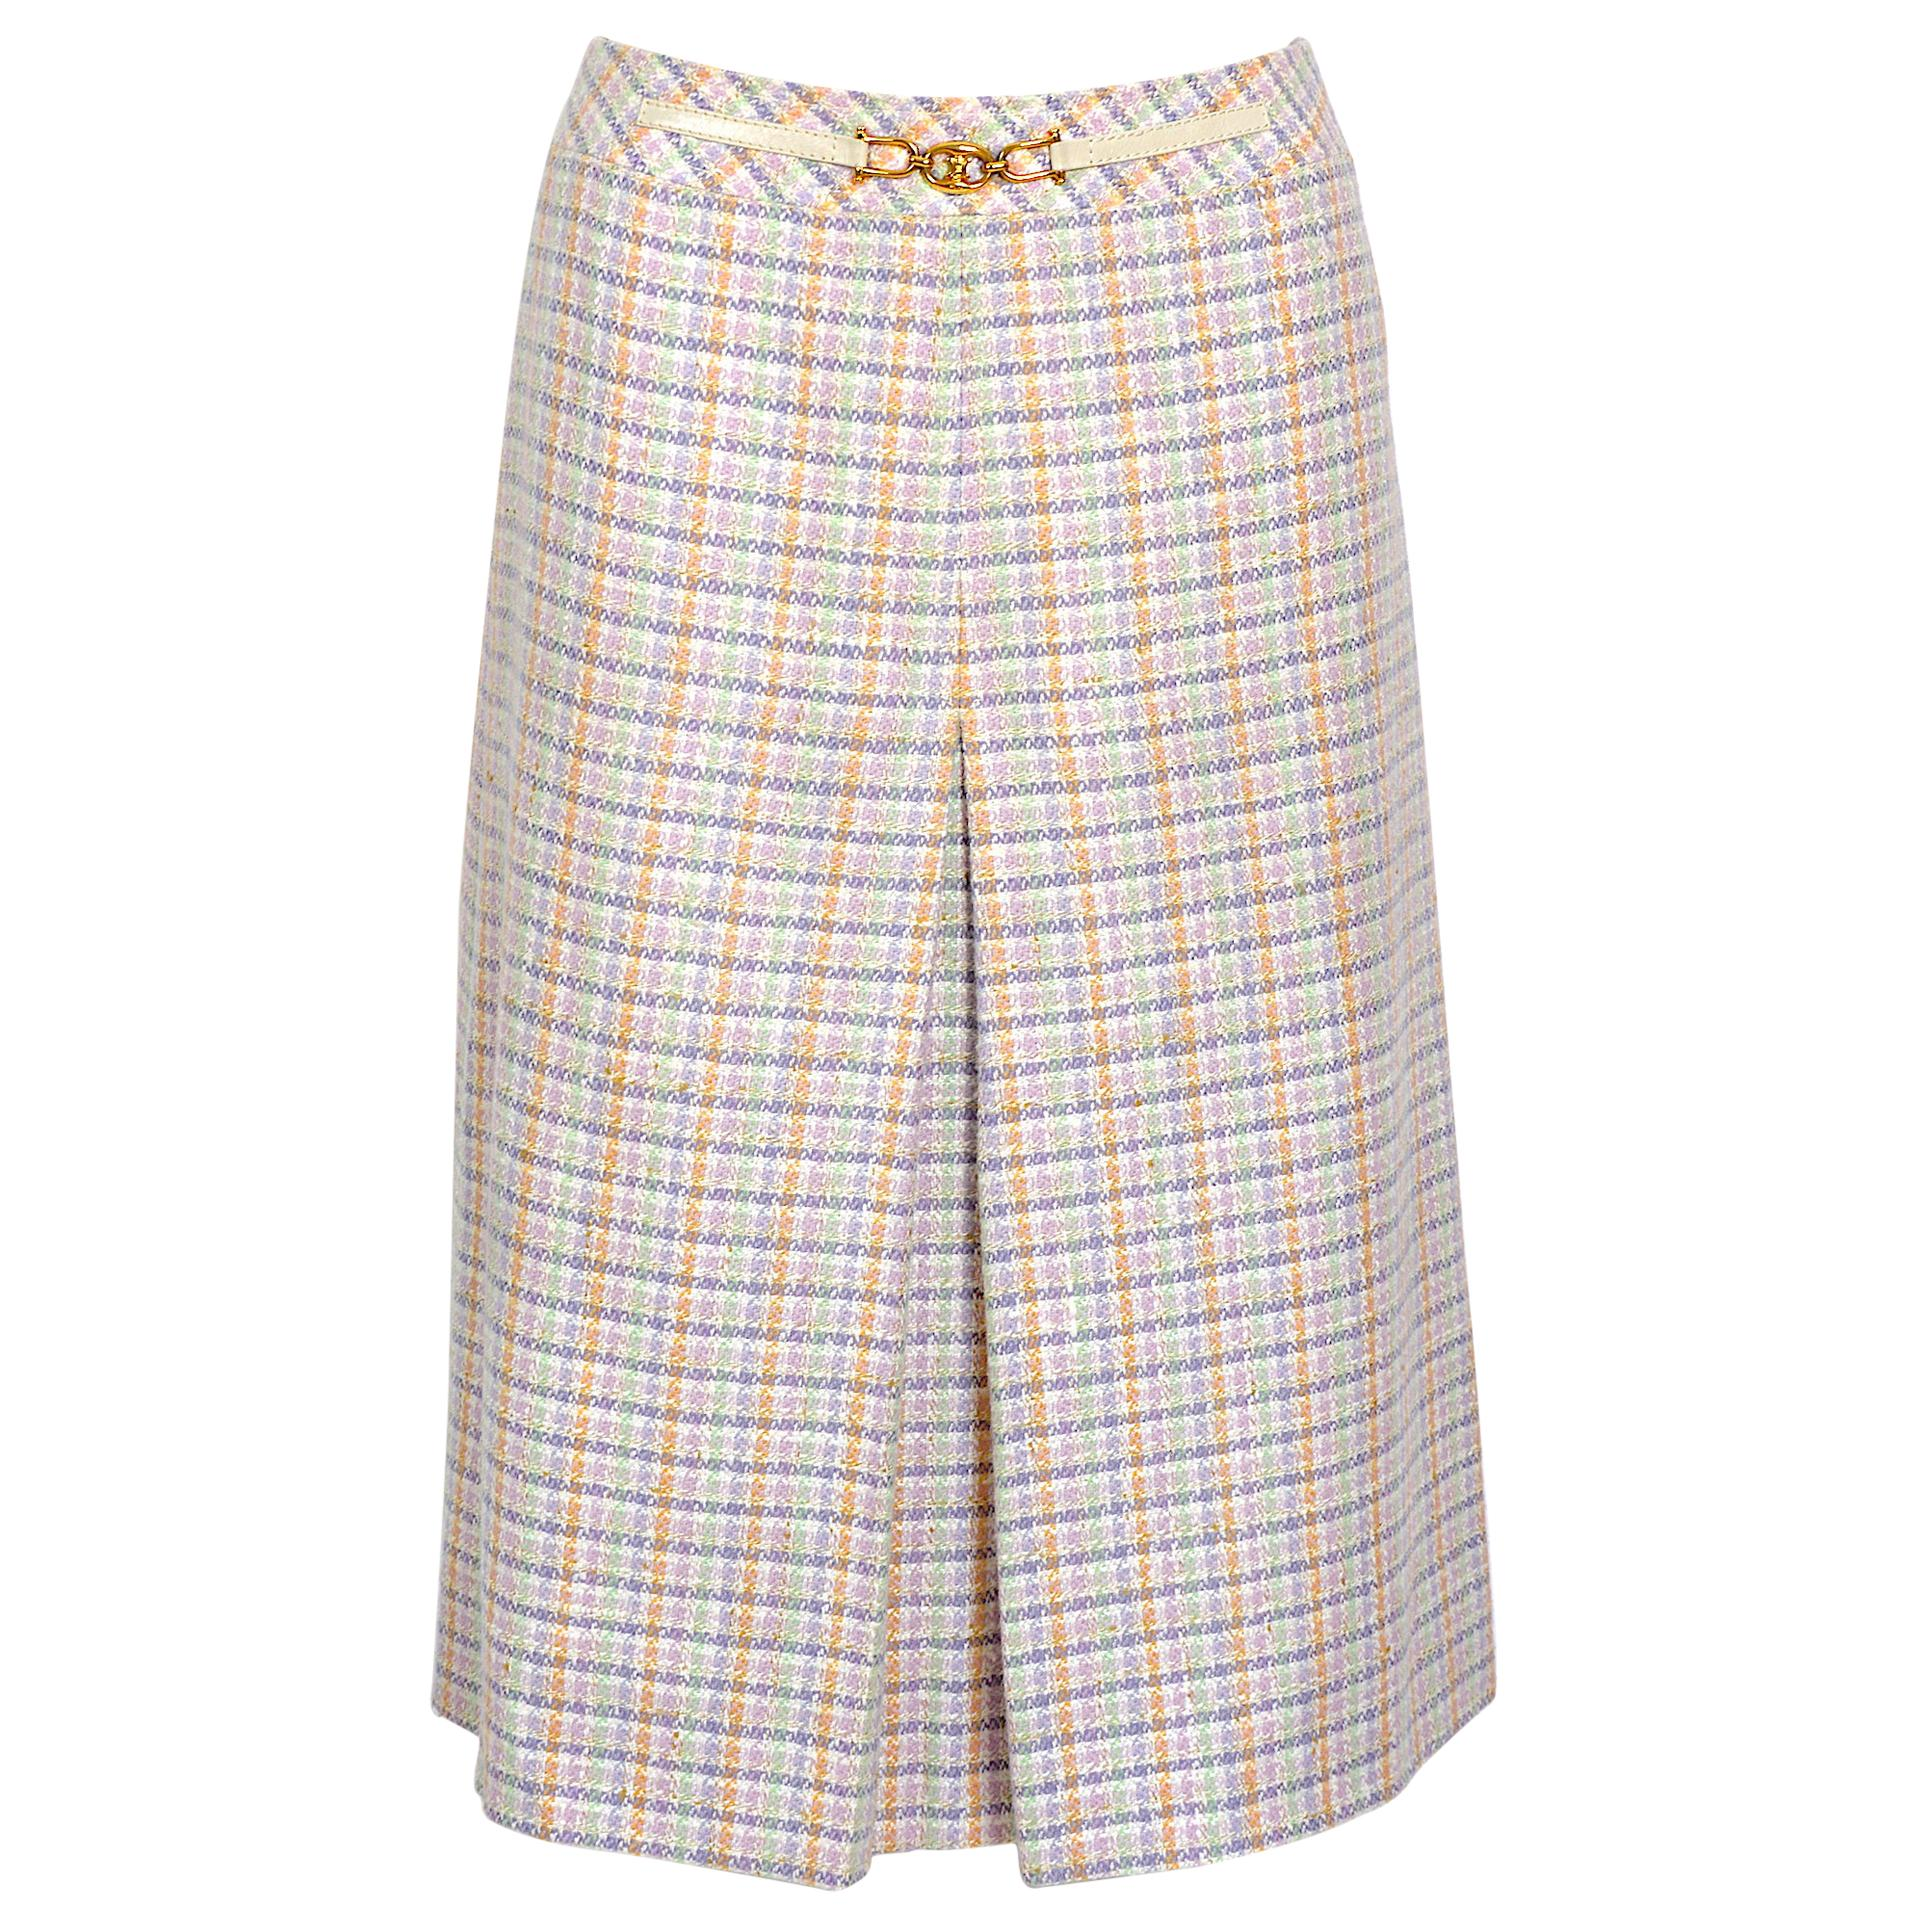 Celine 1970s classic A-Line style pleated check pattern wool skirt